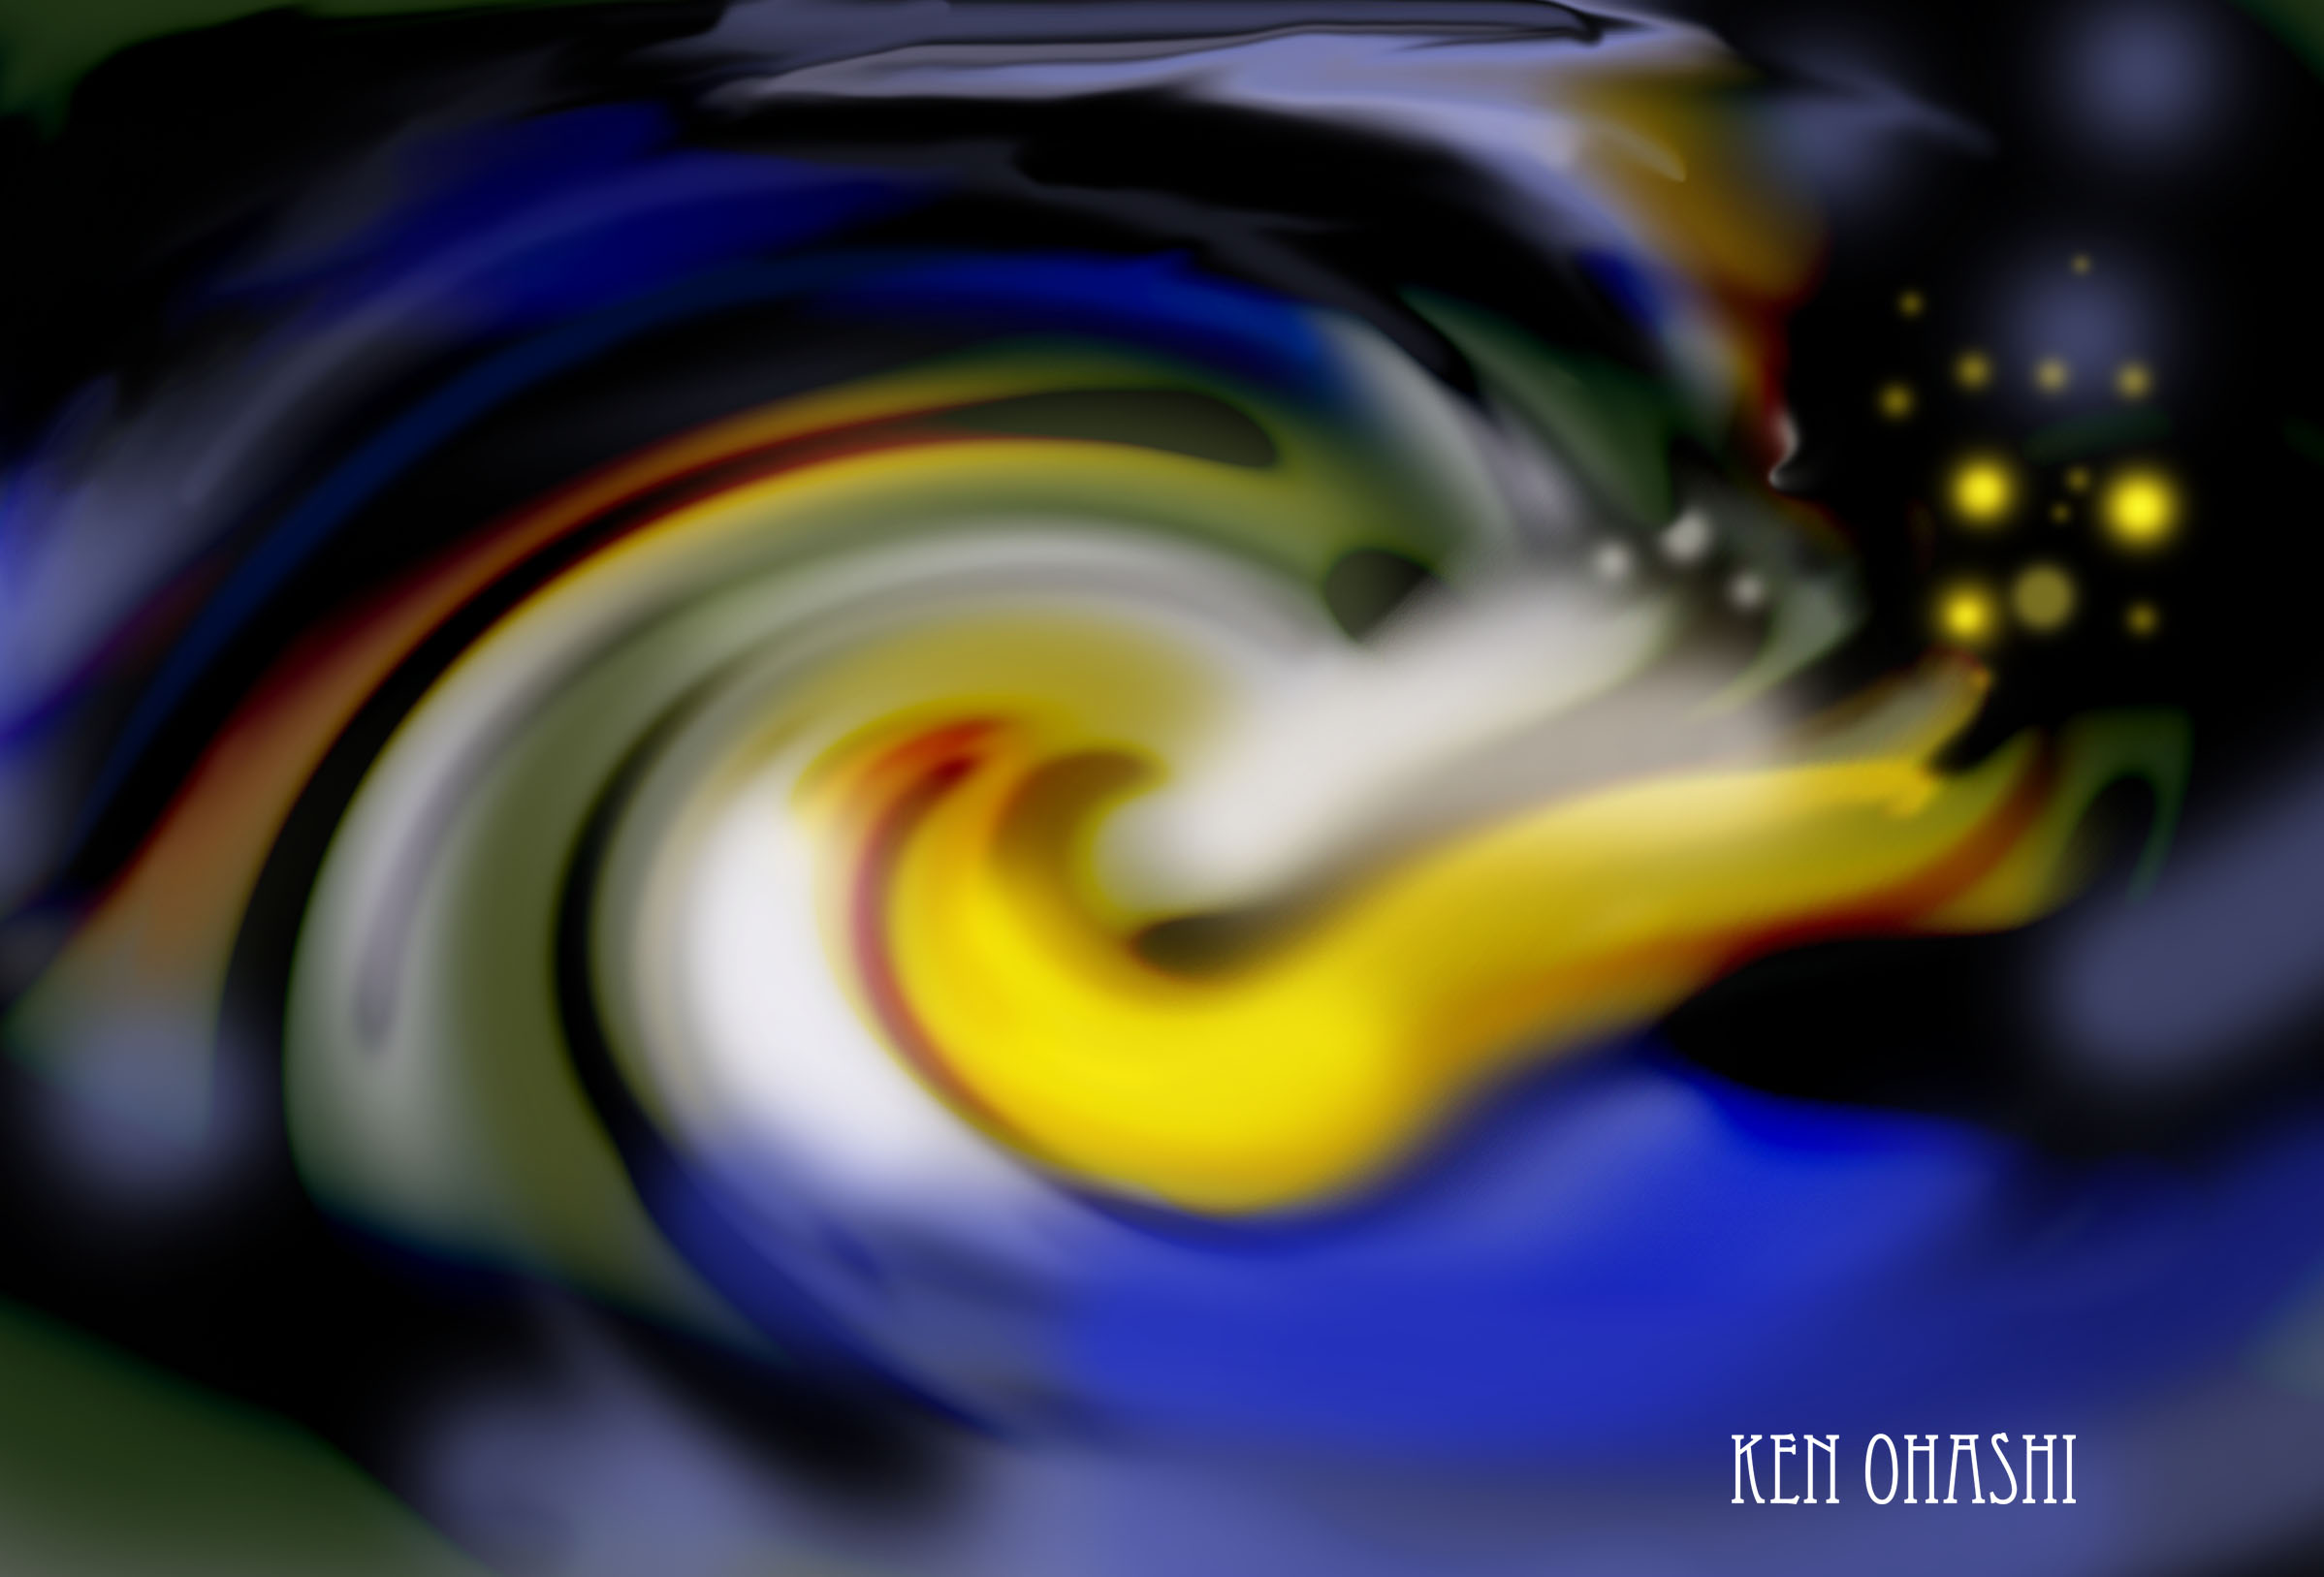 Abstraction_20100802_06